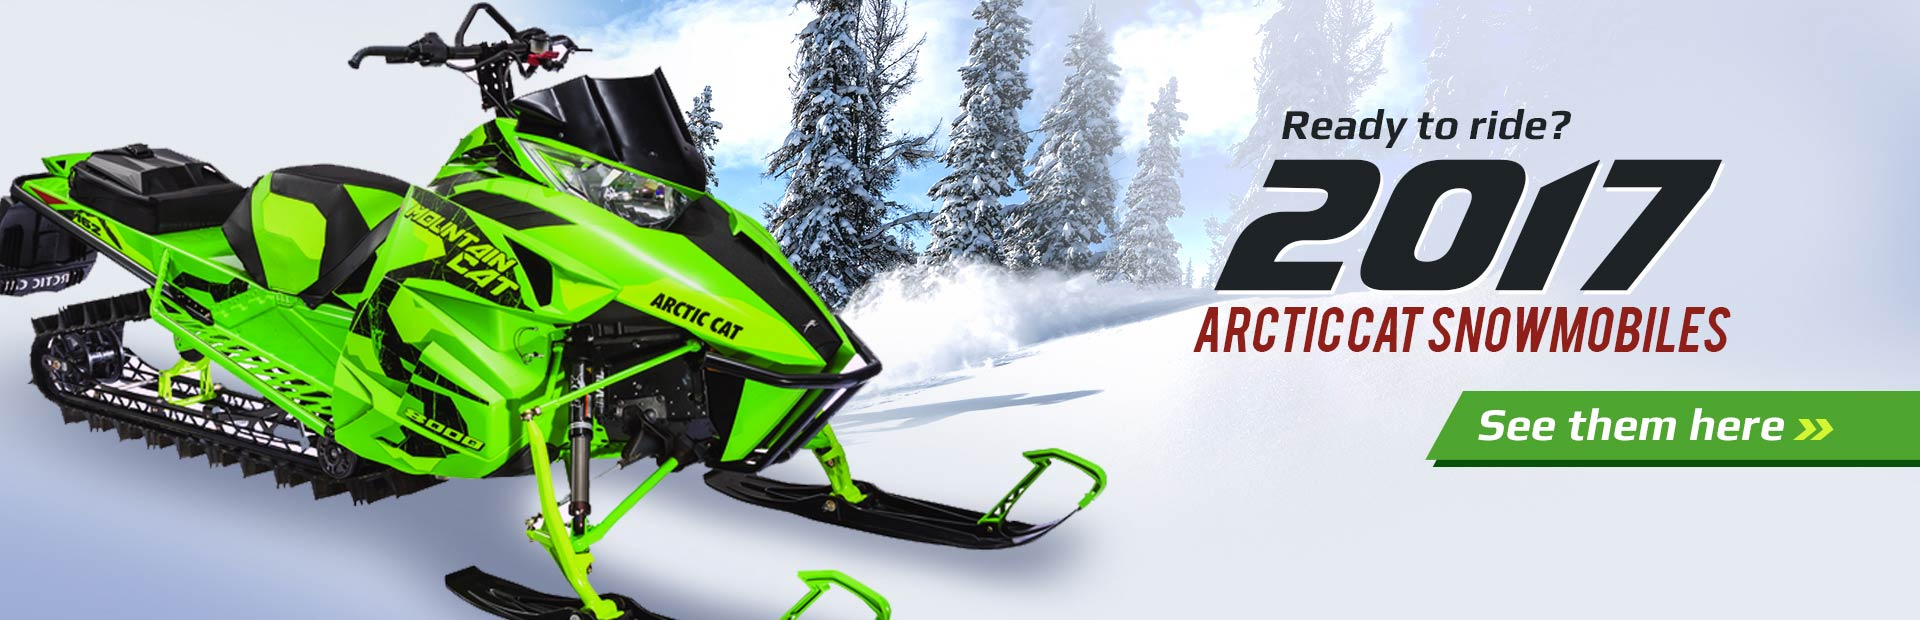 2016 Arctic Cat Snowmobiles: Click here to view the models.